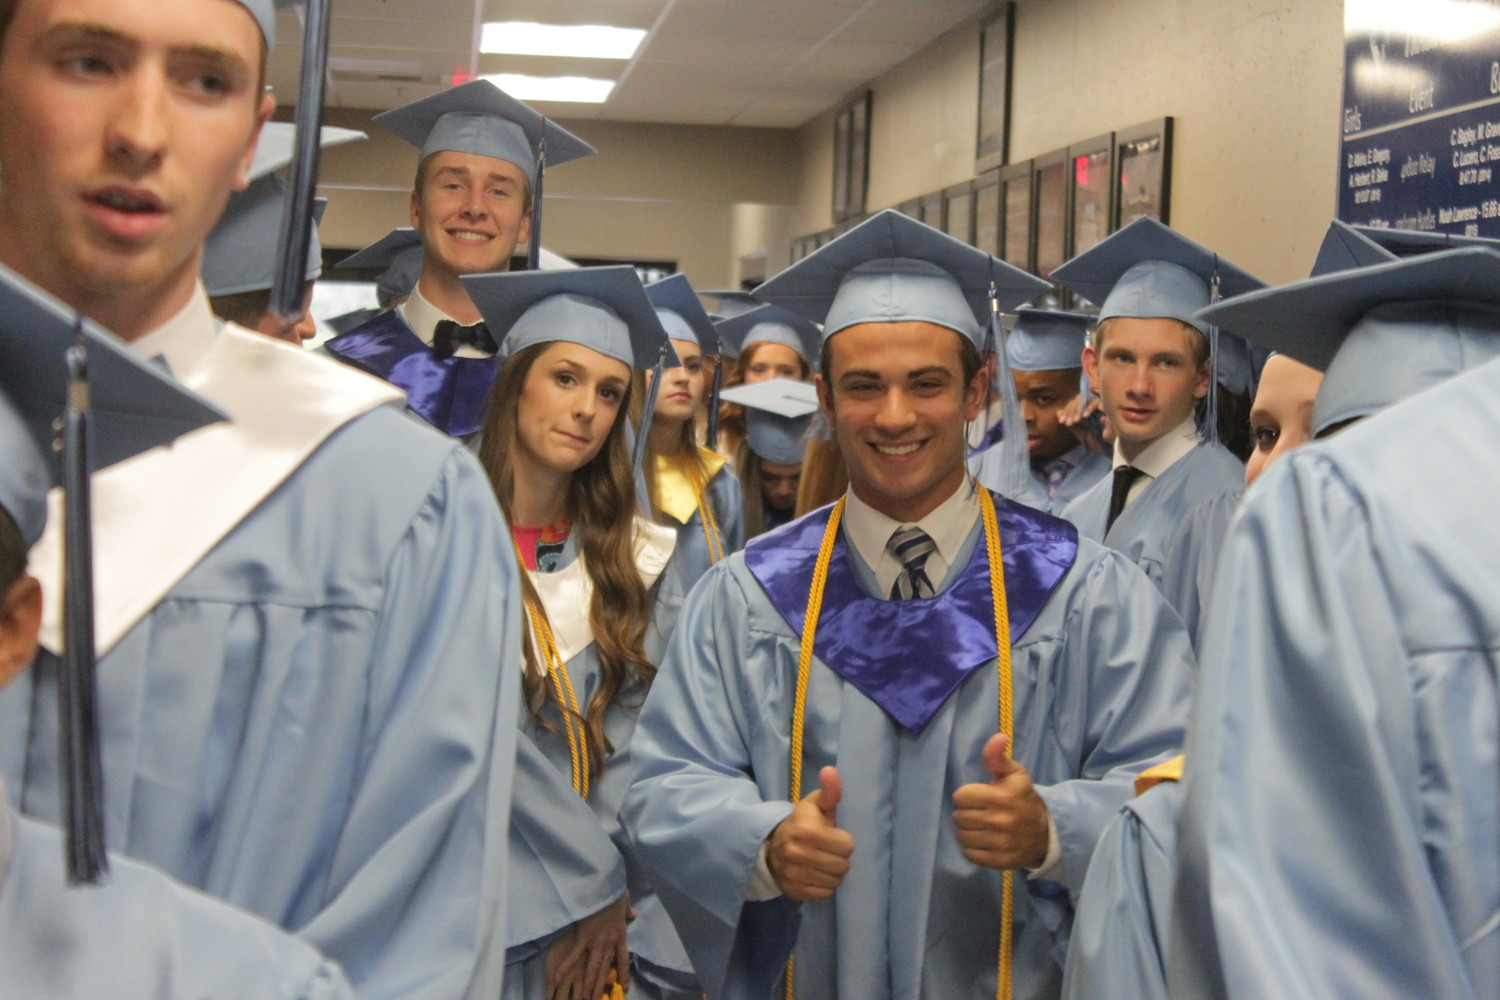 Members of Fr. Tolton Regional High School's graduating Class of 2018 line up in the hallway right before their commencement ceremony begins.